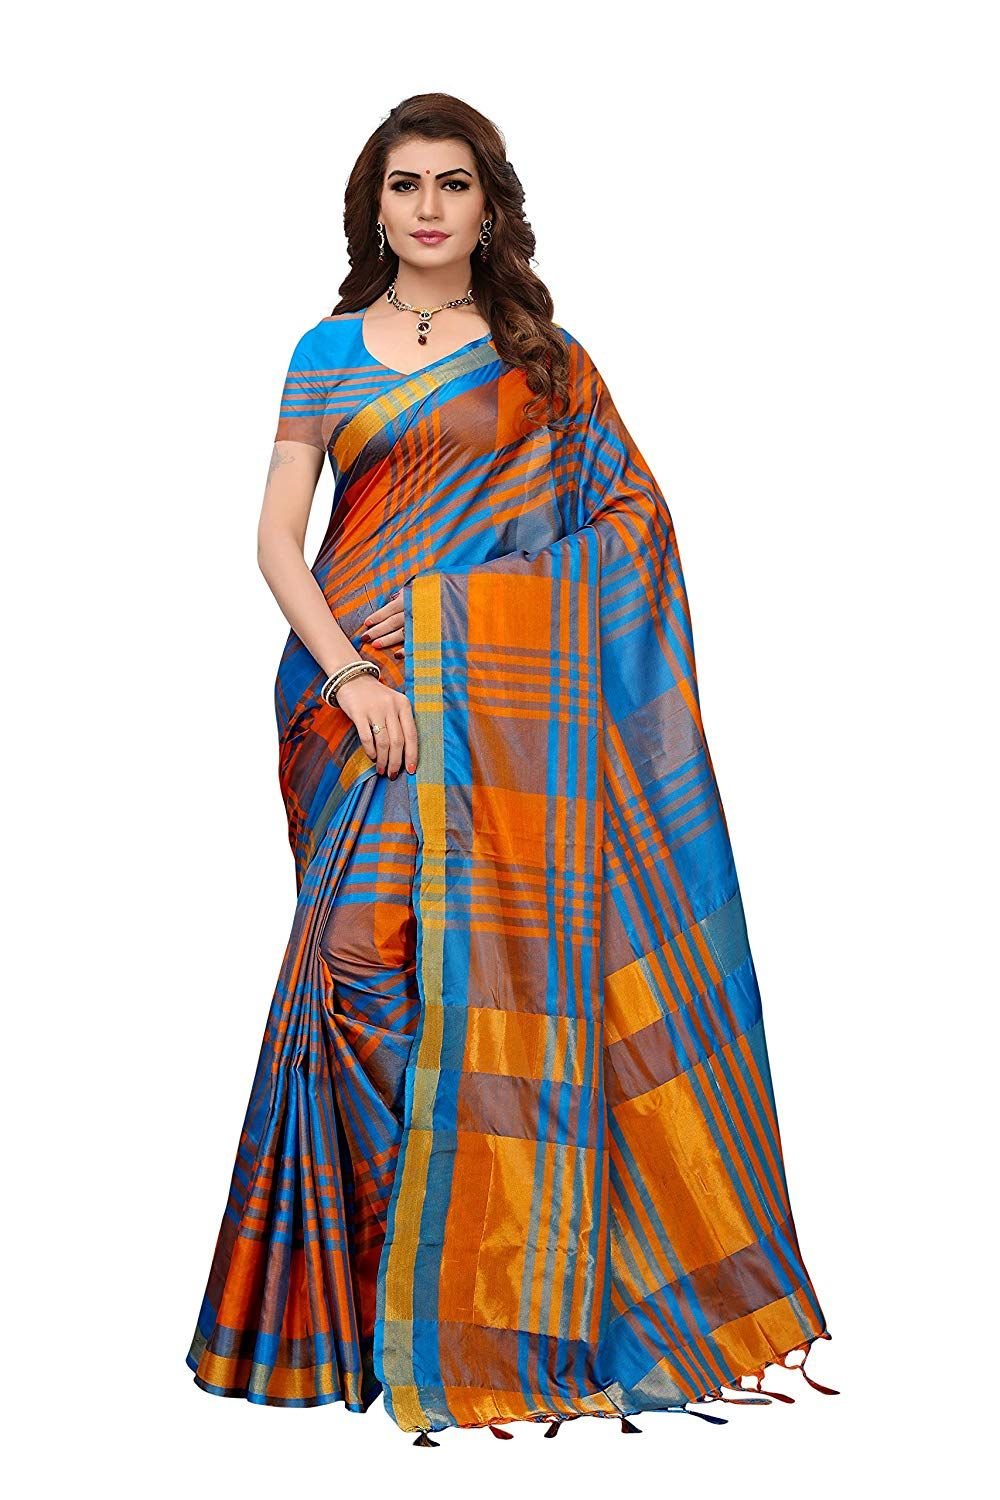 1a20305c475e9 Art Decor multicolor cotton silk festive wear saree with blouse. Saree  length  5.5 meter and blouse length  0.8 meter. Wash care  first wash dry  clean only.